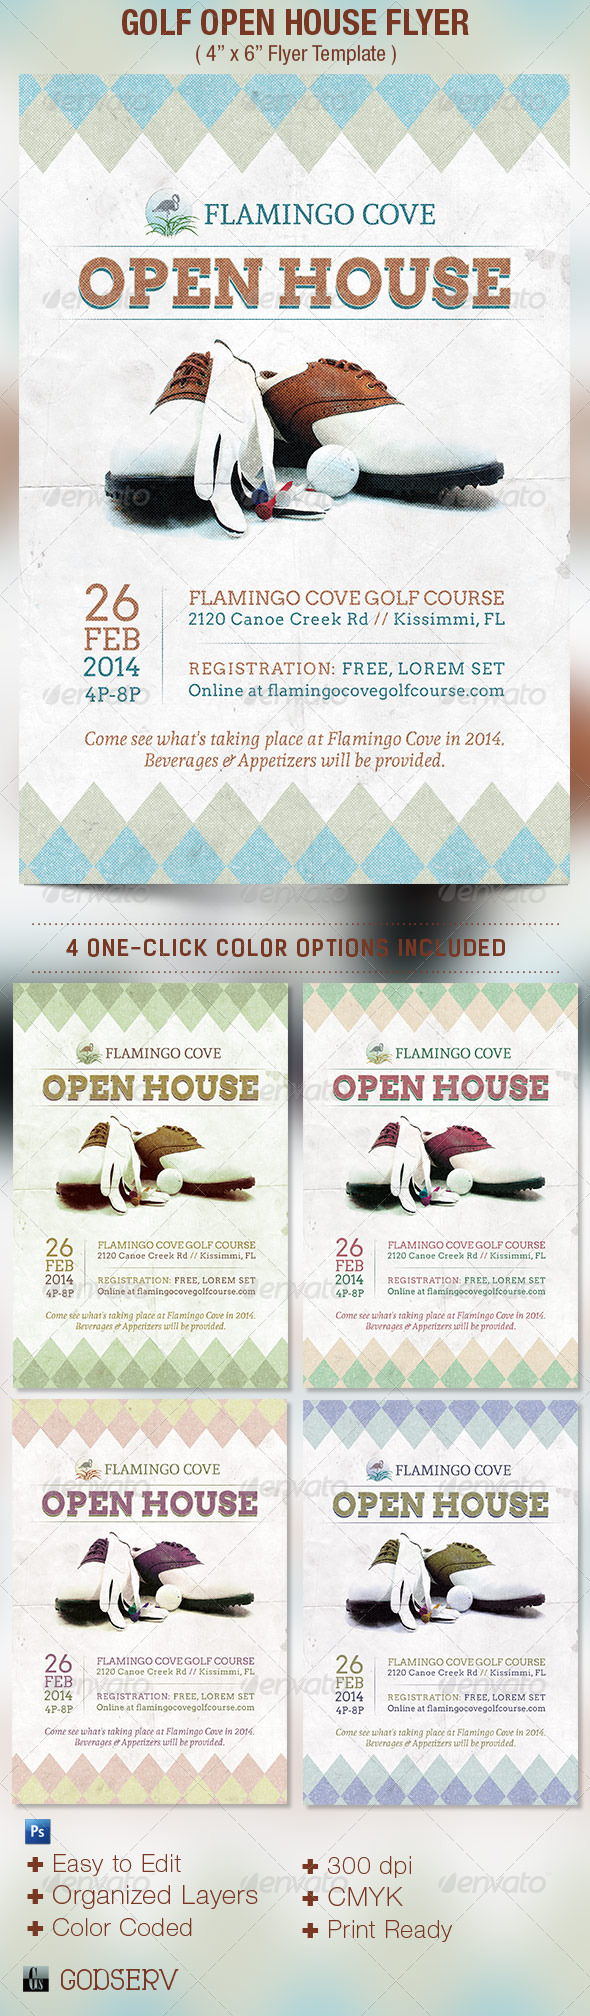 Open house school flyer template stock for Free open house flyer template